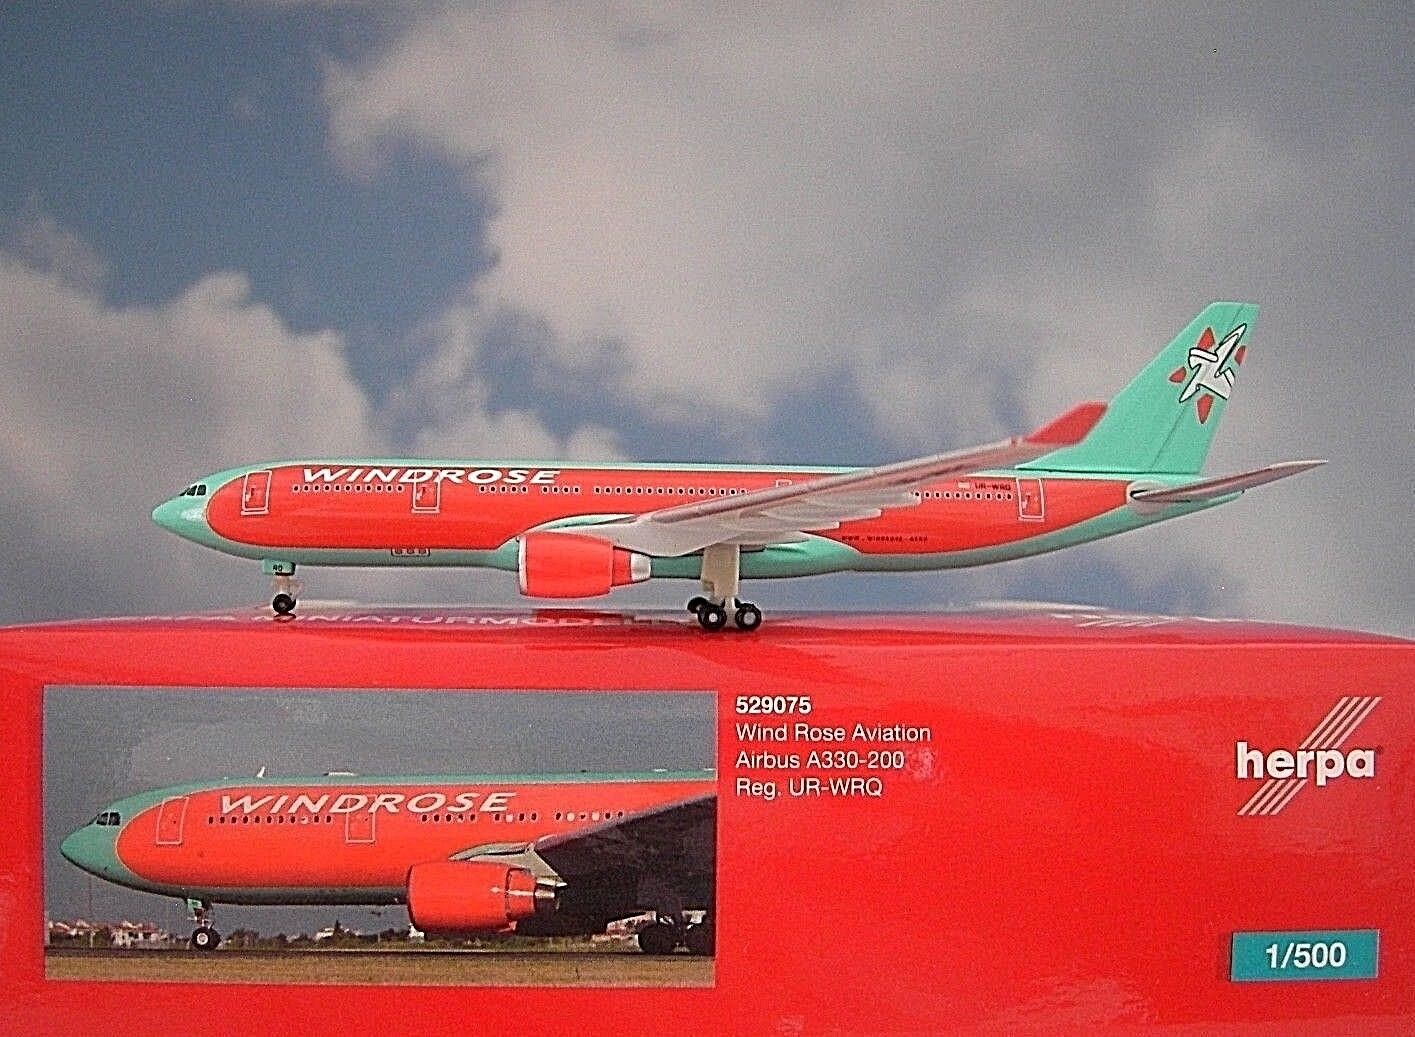 Herpa Wings 1 500 Airbus A330-200 A330-200 A330-200 Wind pink Ur-Wrq 529075 Modellairport500 49895a